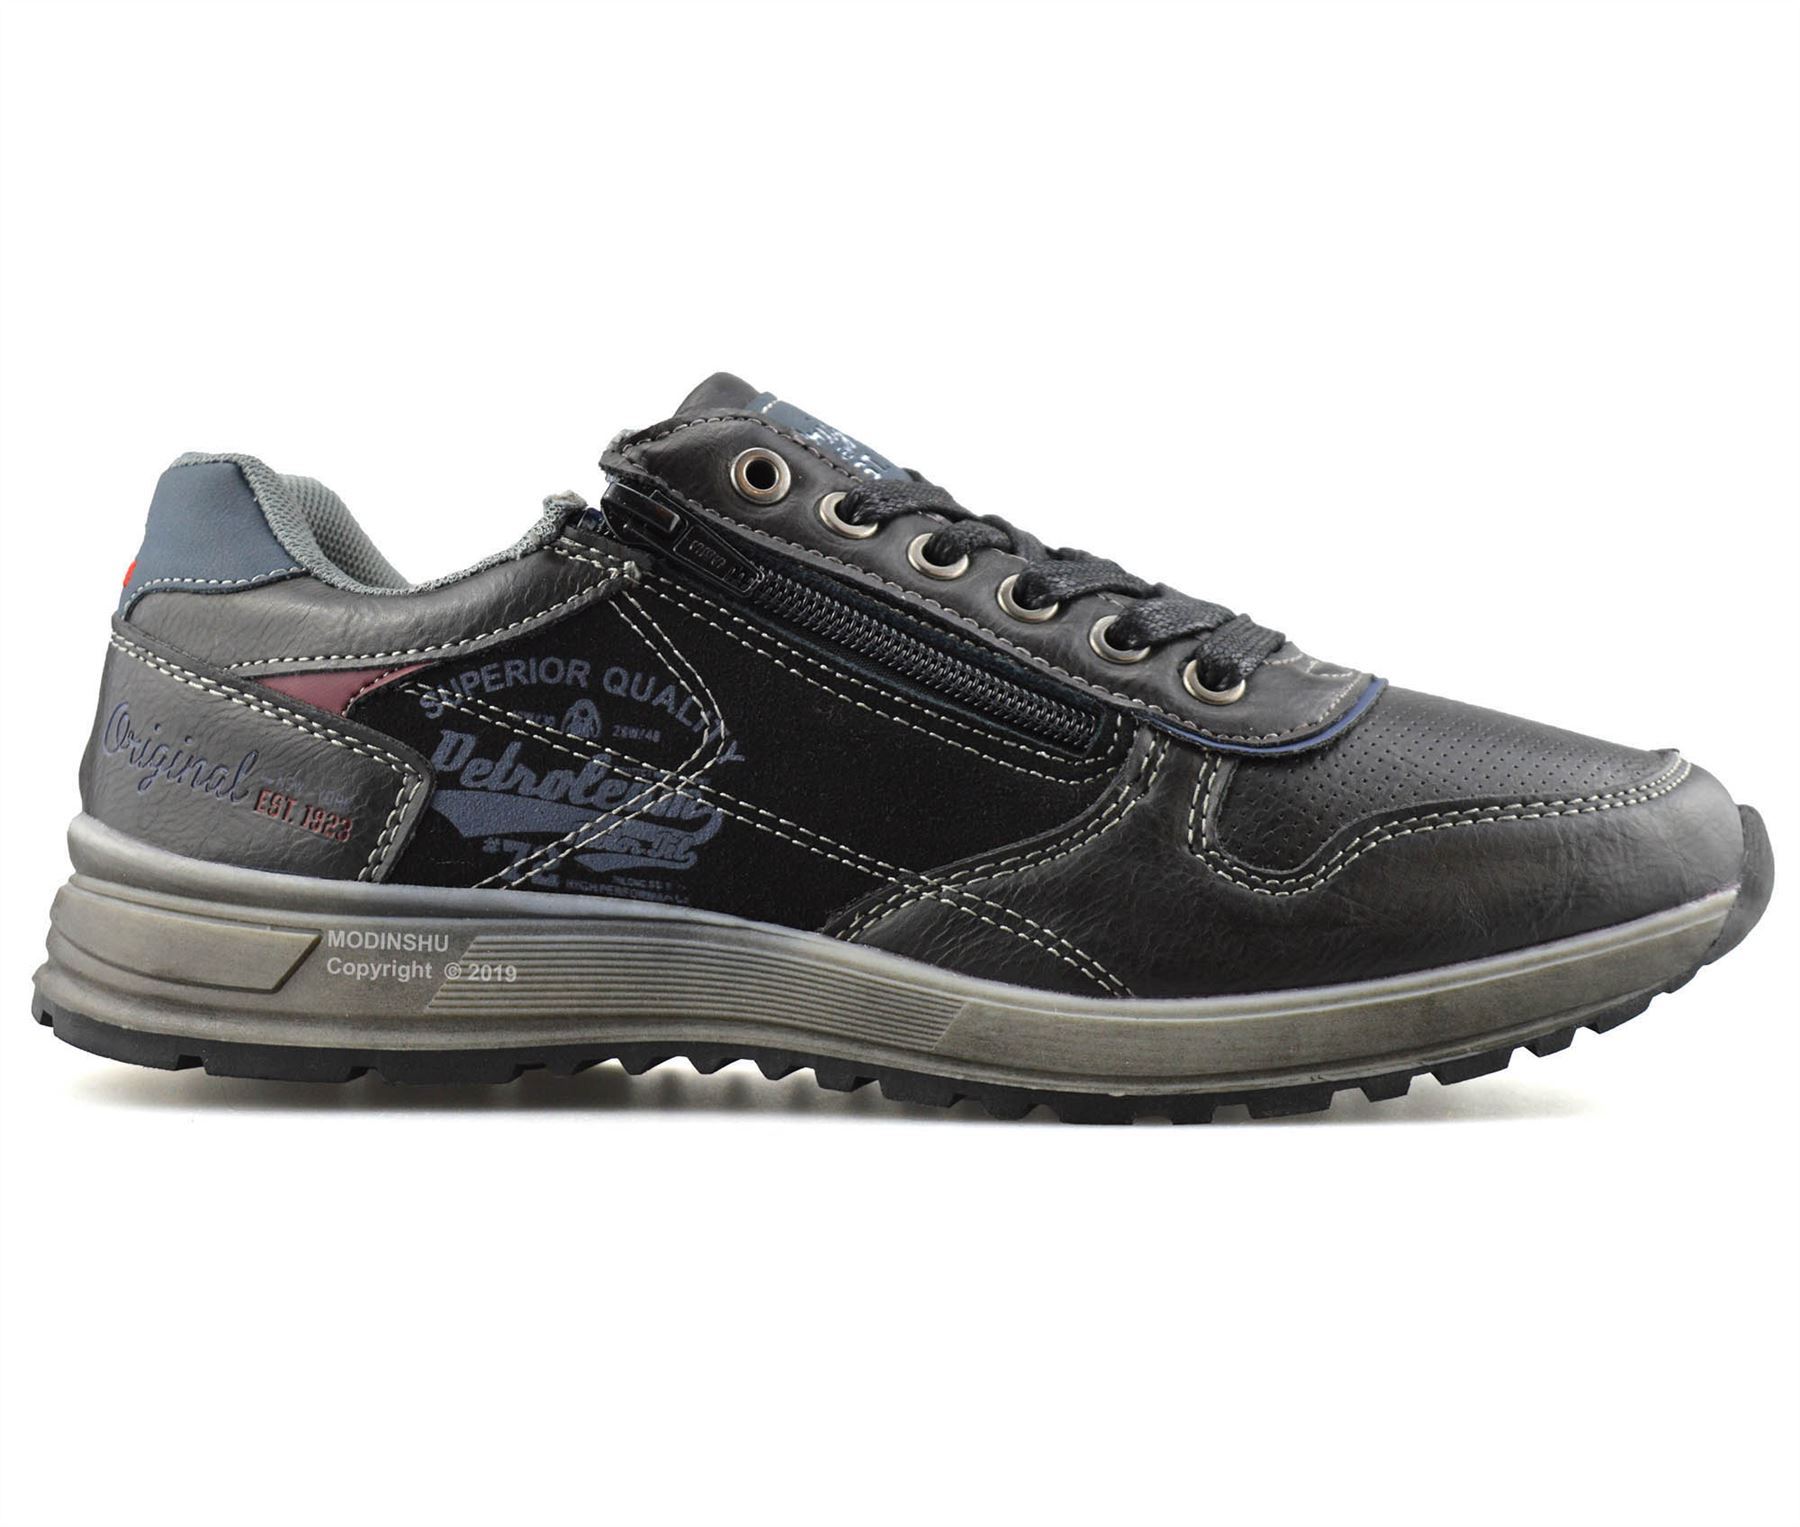 Mens-Casual-Zip-Lace-Up-Walking-Running-Hiking-Sports-Gym-Trainers-Shoes-Size thumbnail 9